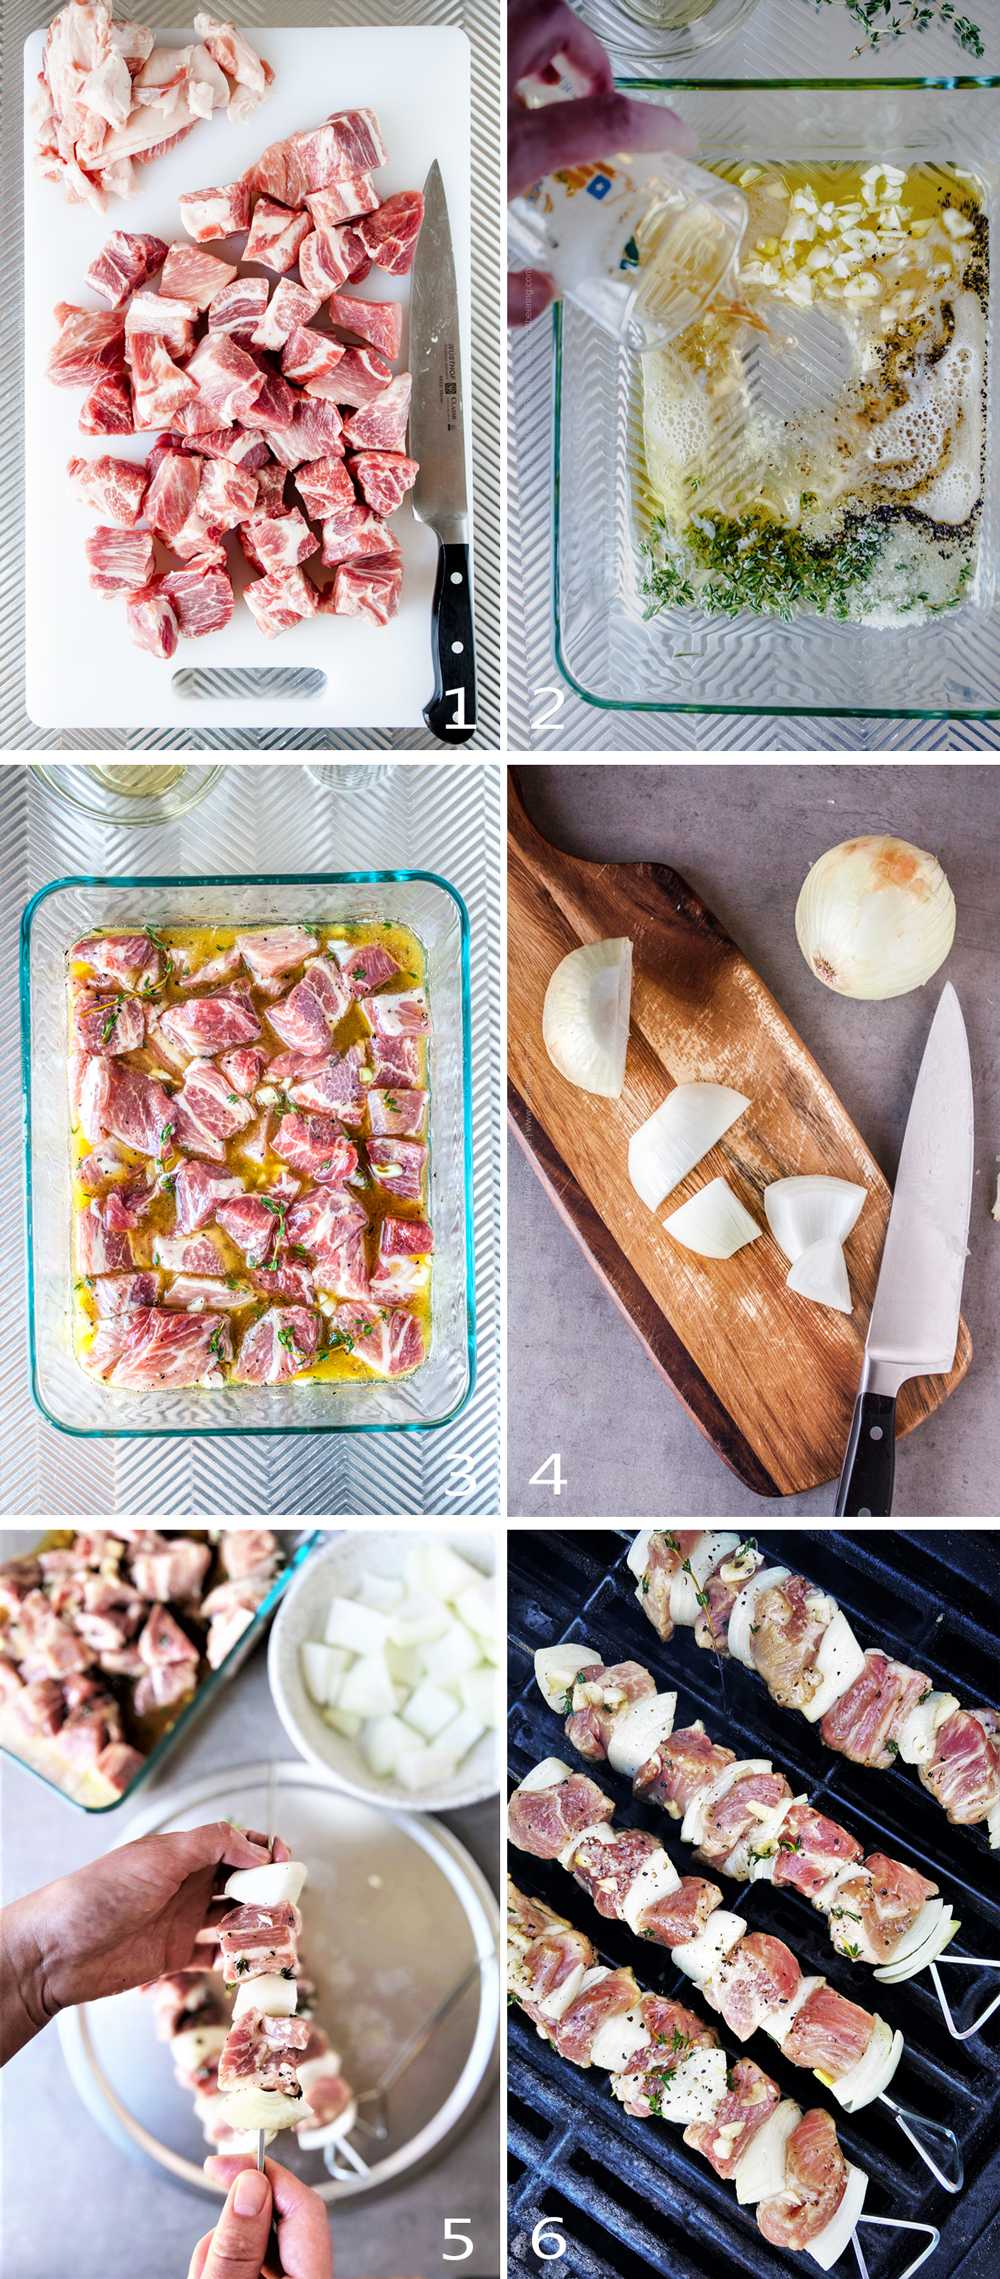 How to marinate, thread and grill pork skewers.